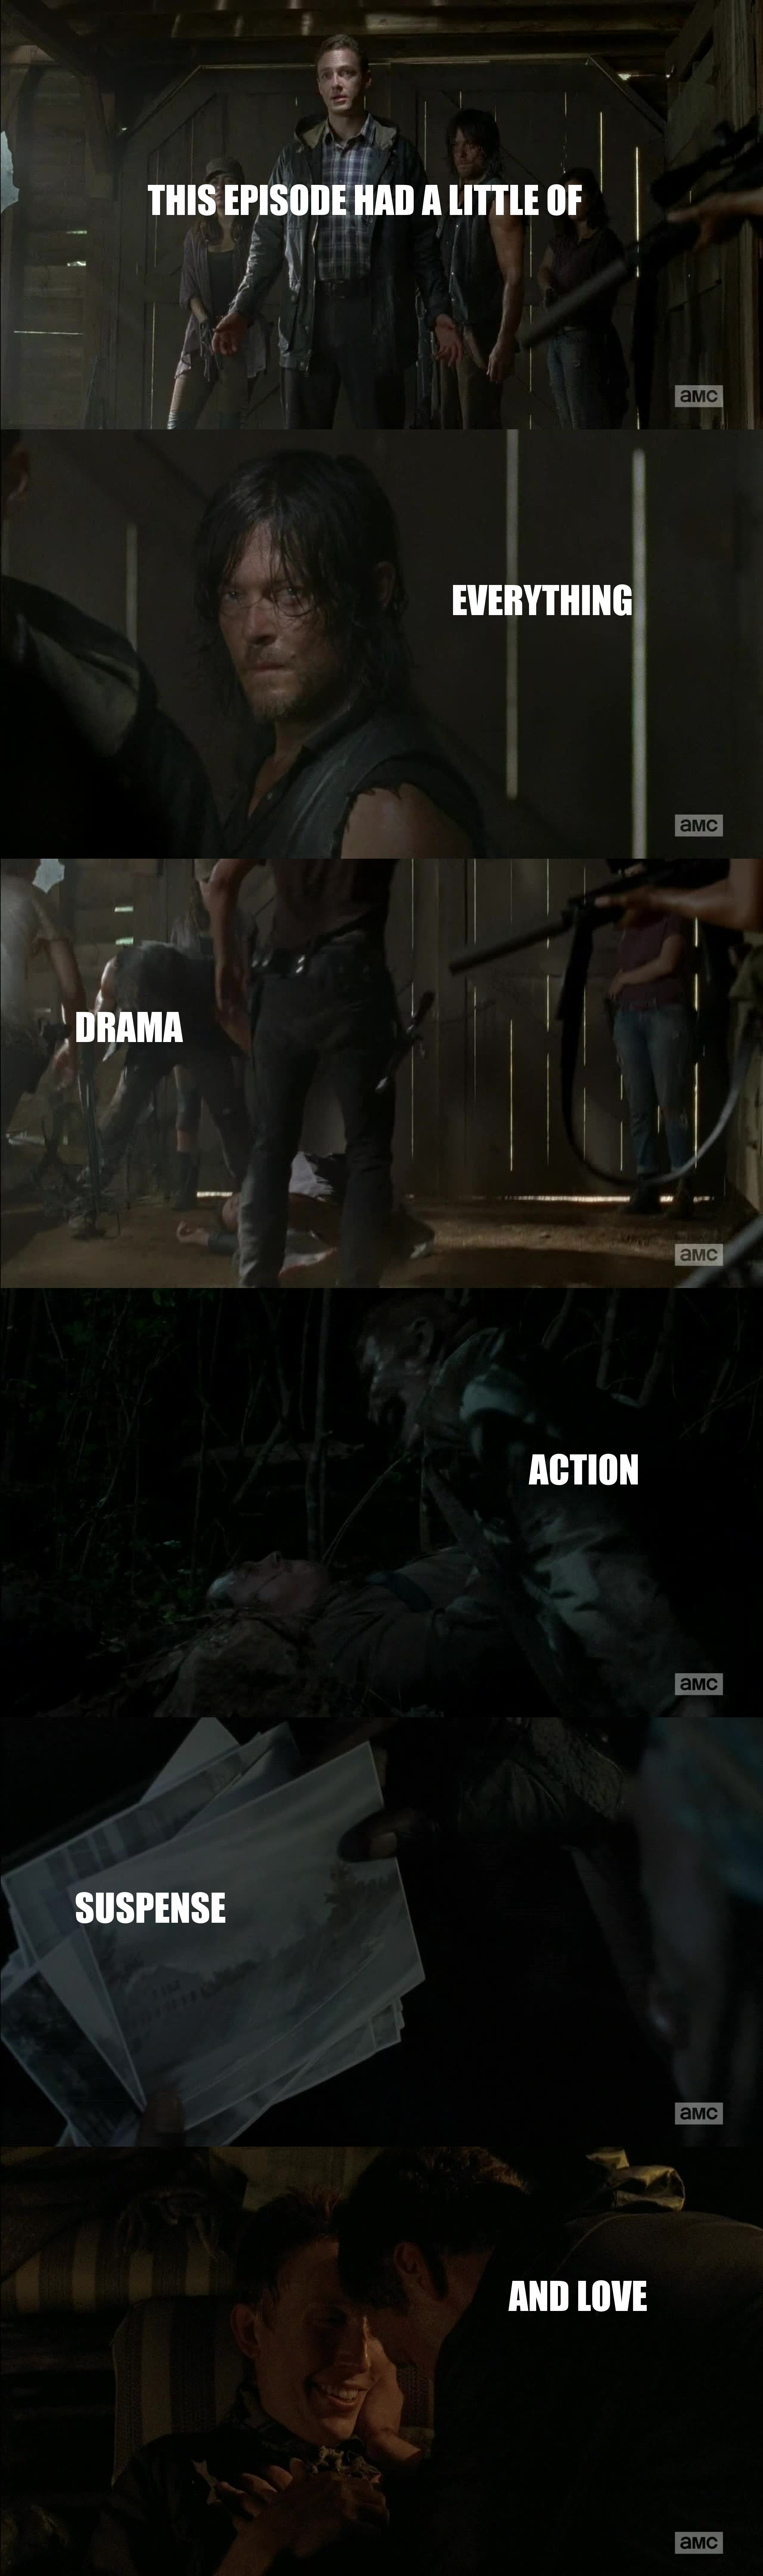 Finally an episode matching the standards of The Walking Dead